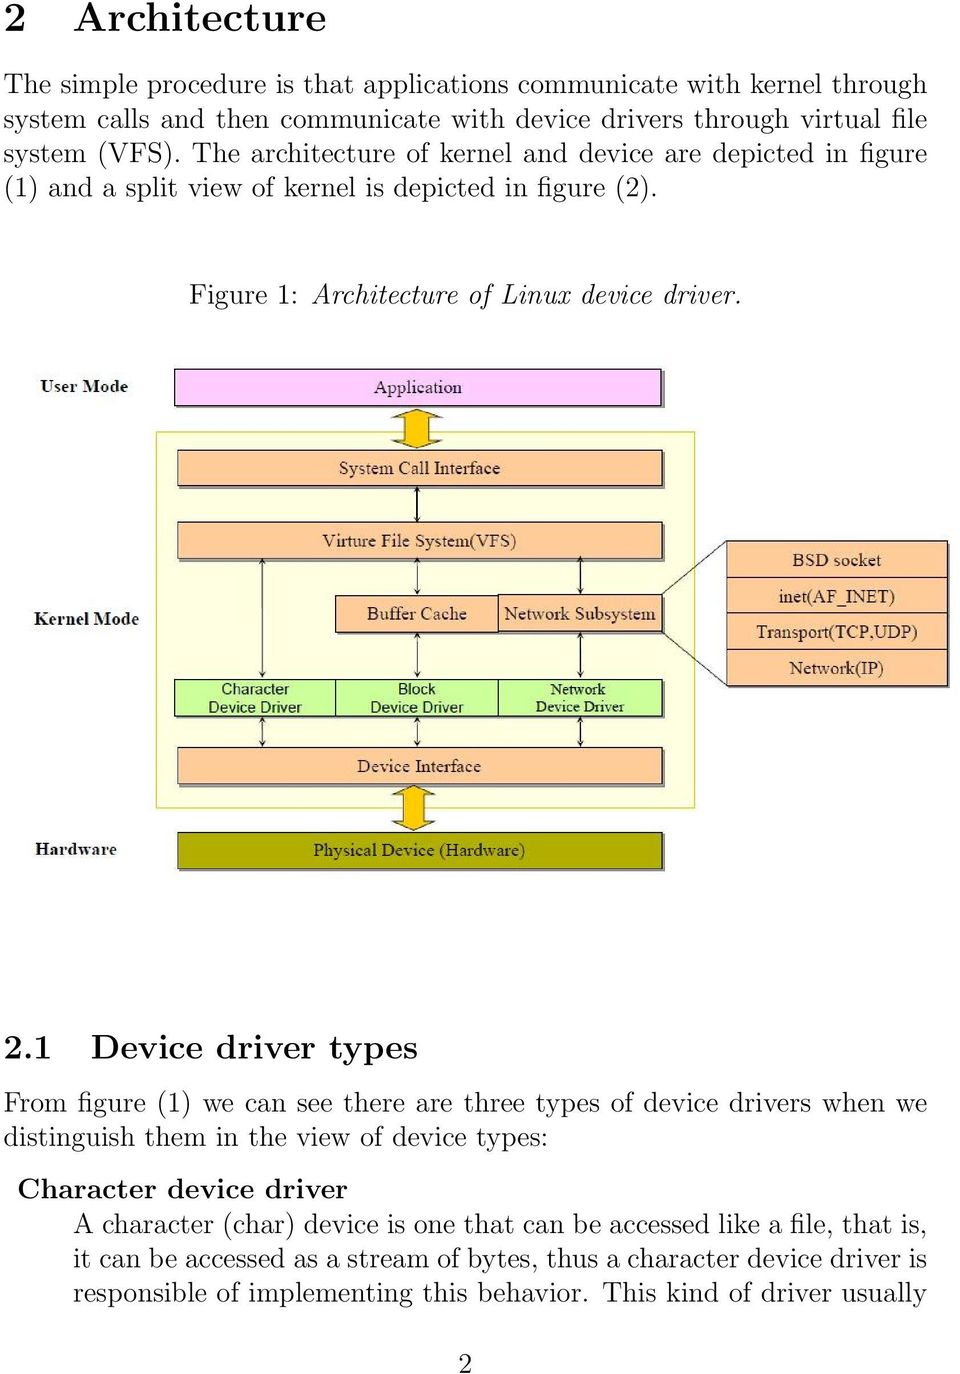 1 Device driver types From figure (1) we can see there are three types of device drivers when we distinguish them in the view of device types: Character device driver A character